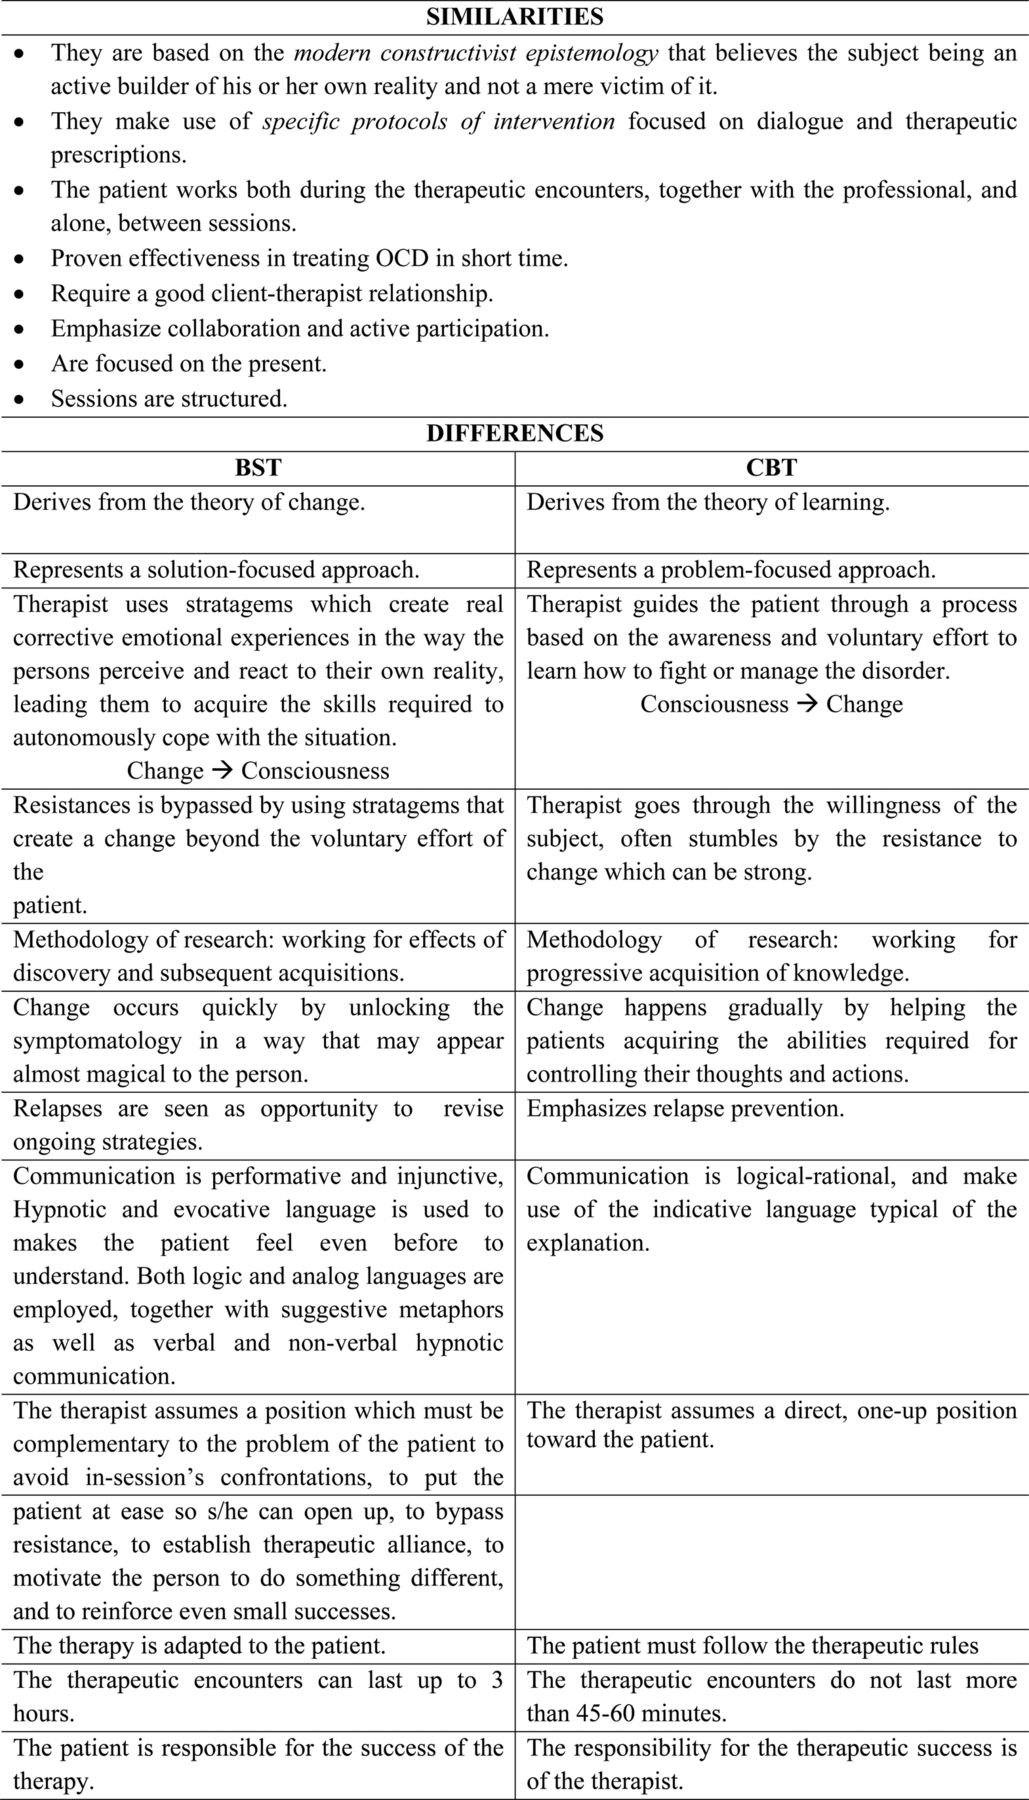 therapeutic psychology essay Comparison and contrast of behavioral and  rebt continues to be useful in therapeutic application in  journal of clinical psychology.